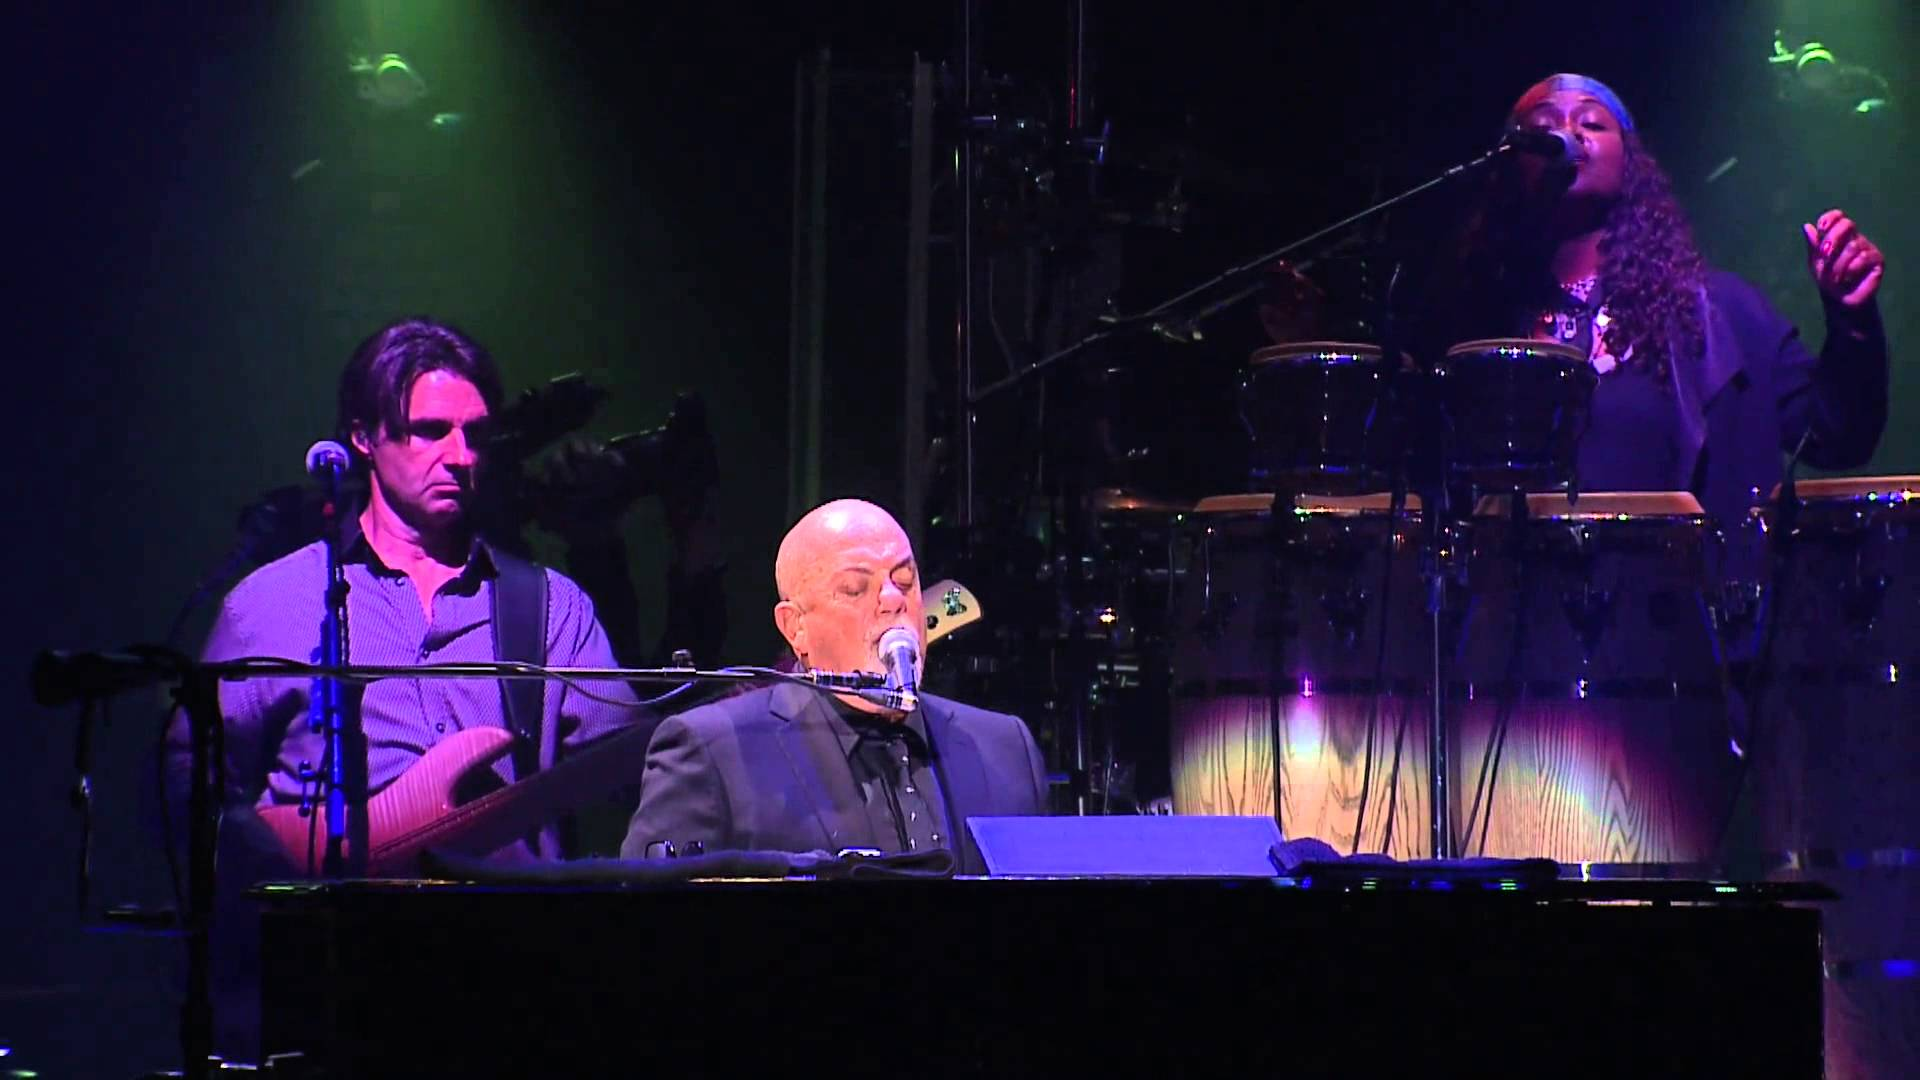 Billy Joel sells out record breaking 30th show at Madison Square